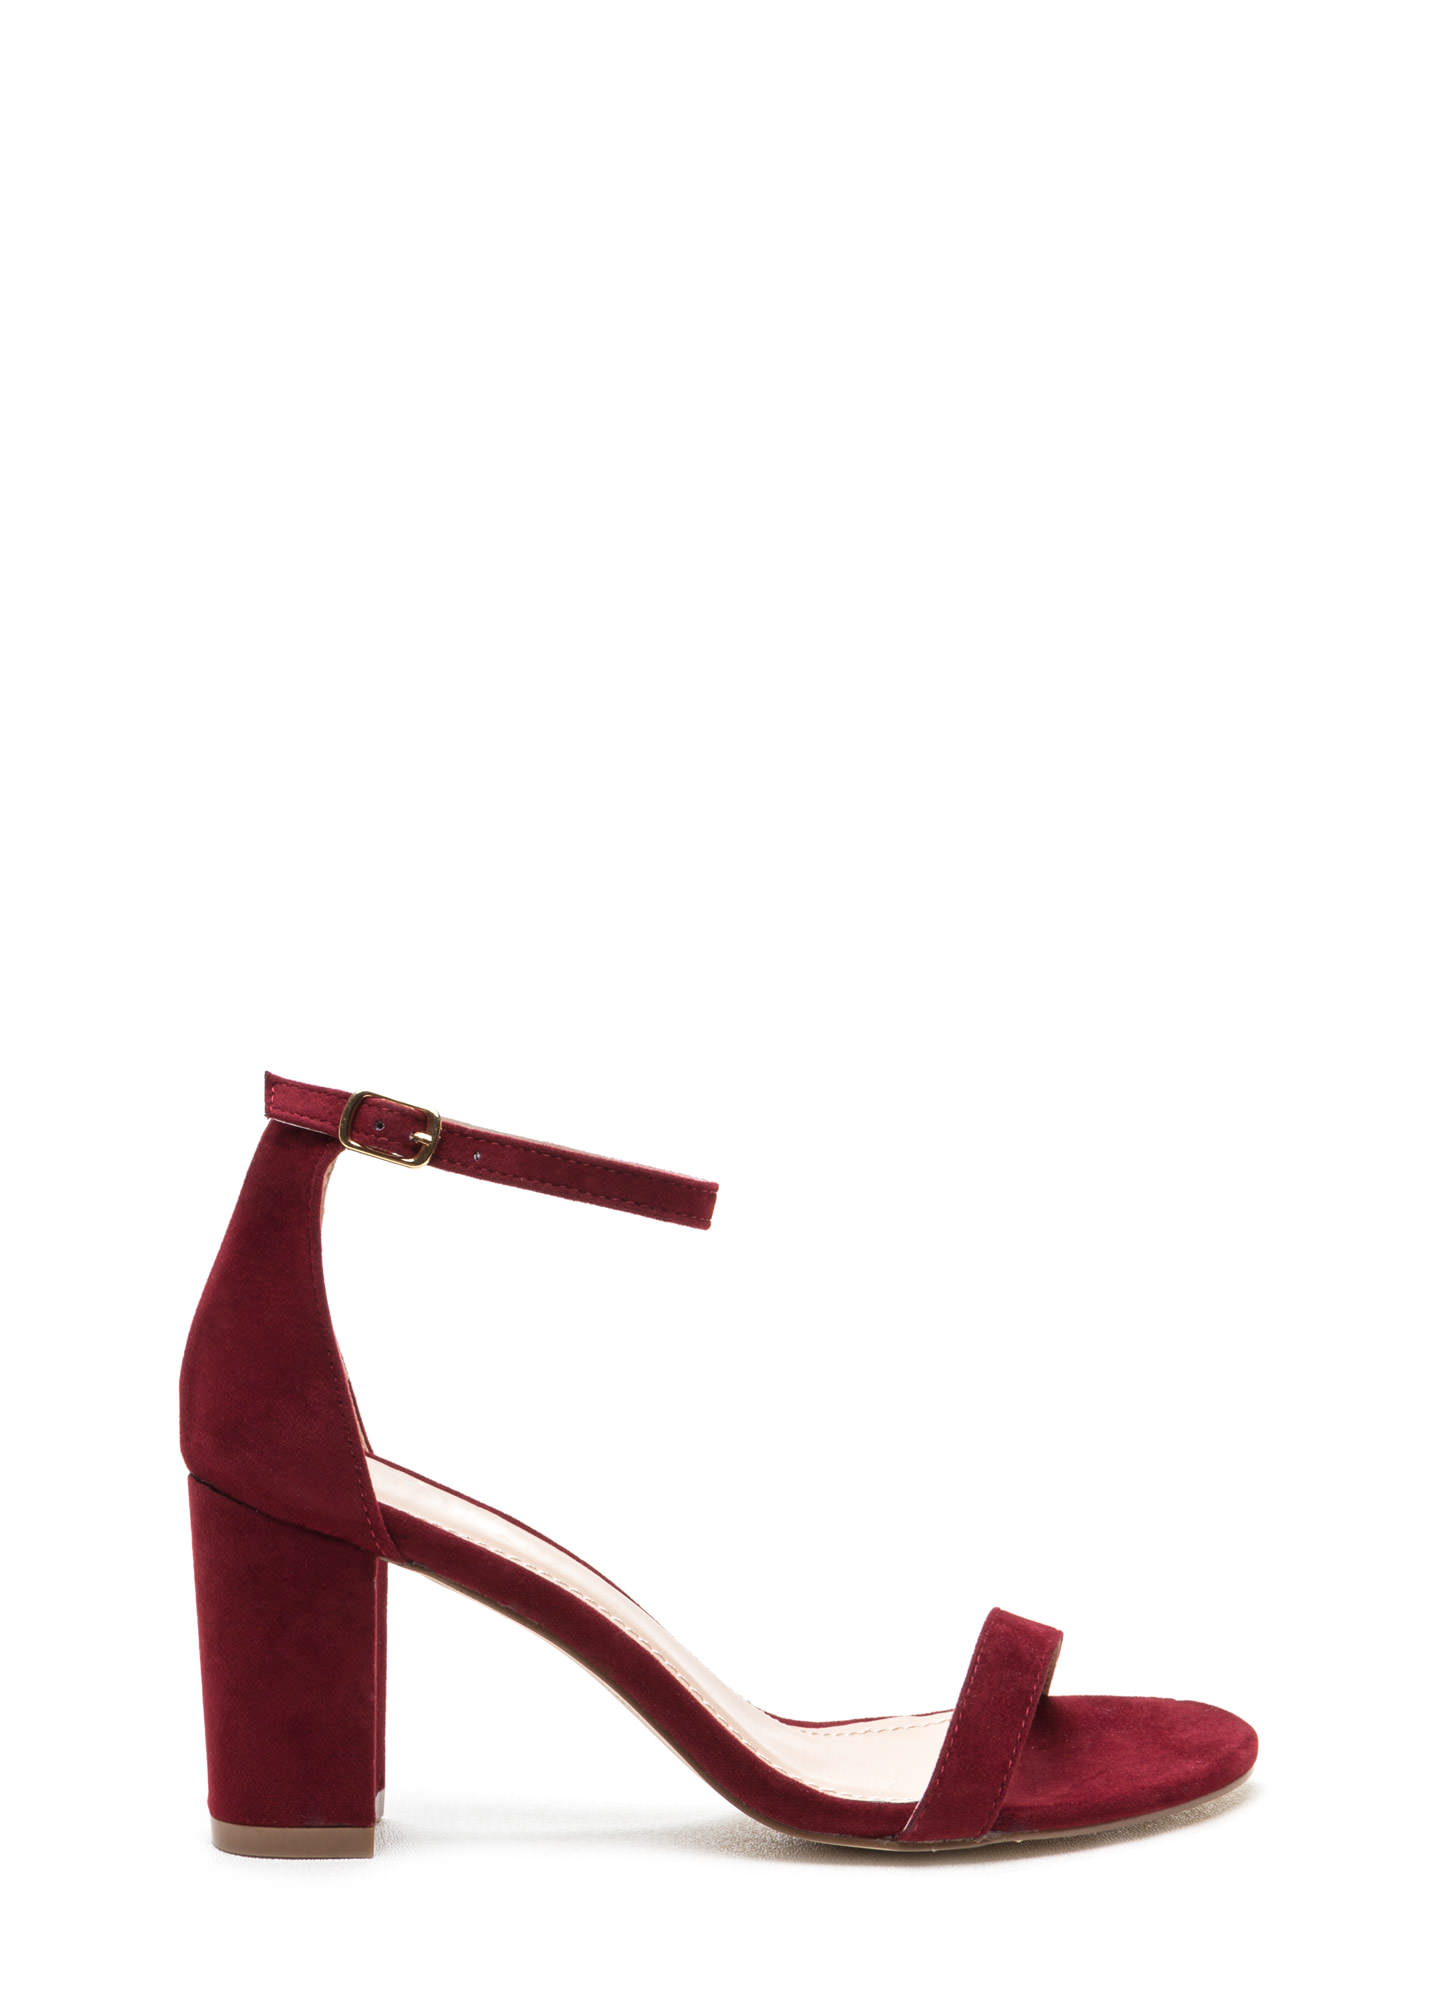 Weekend Outing Faux Suede Chunky Heels WINE